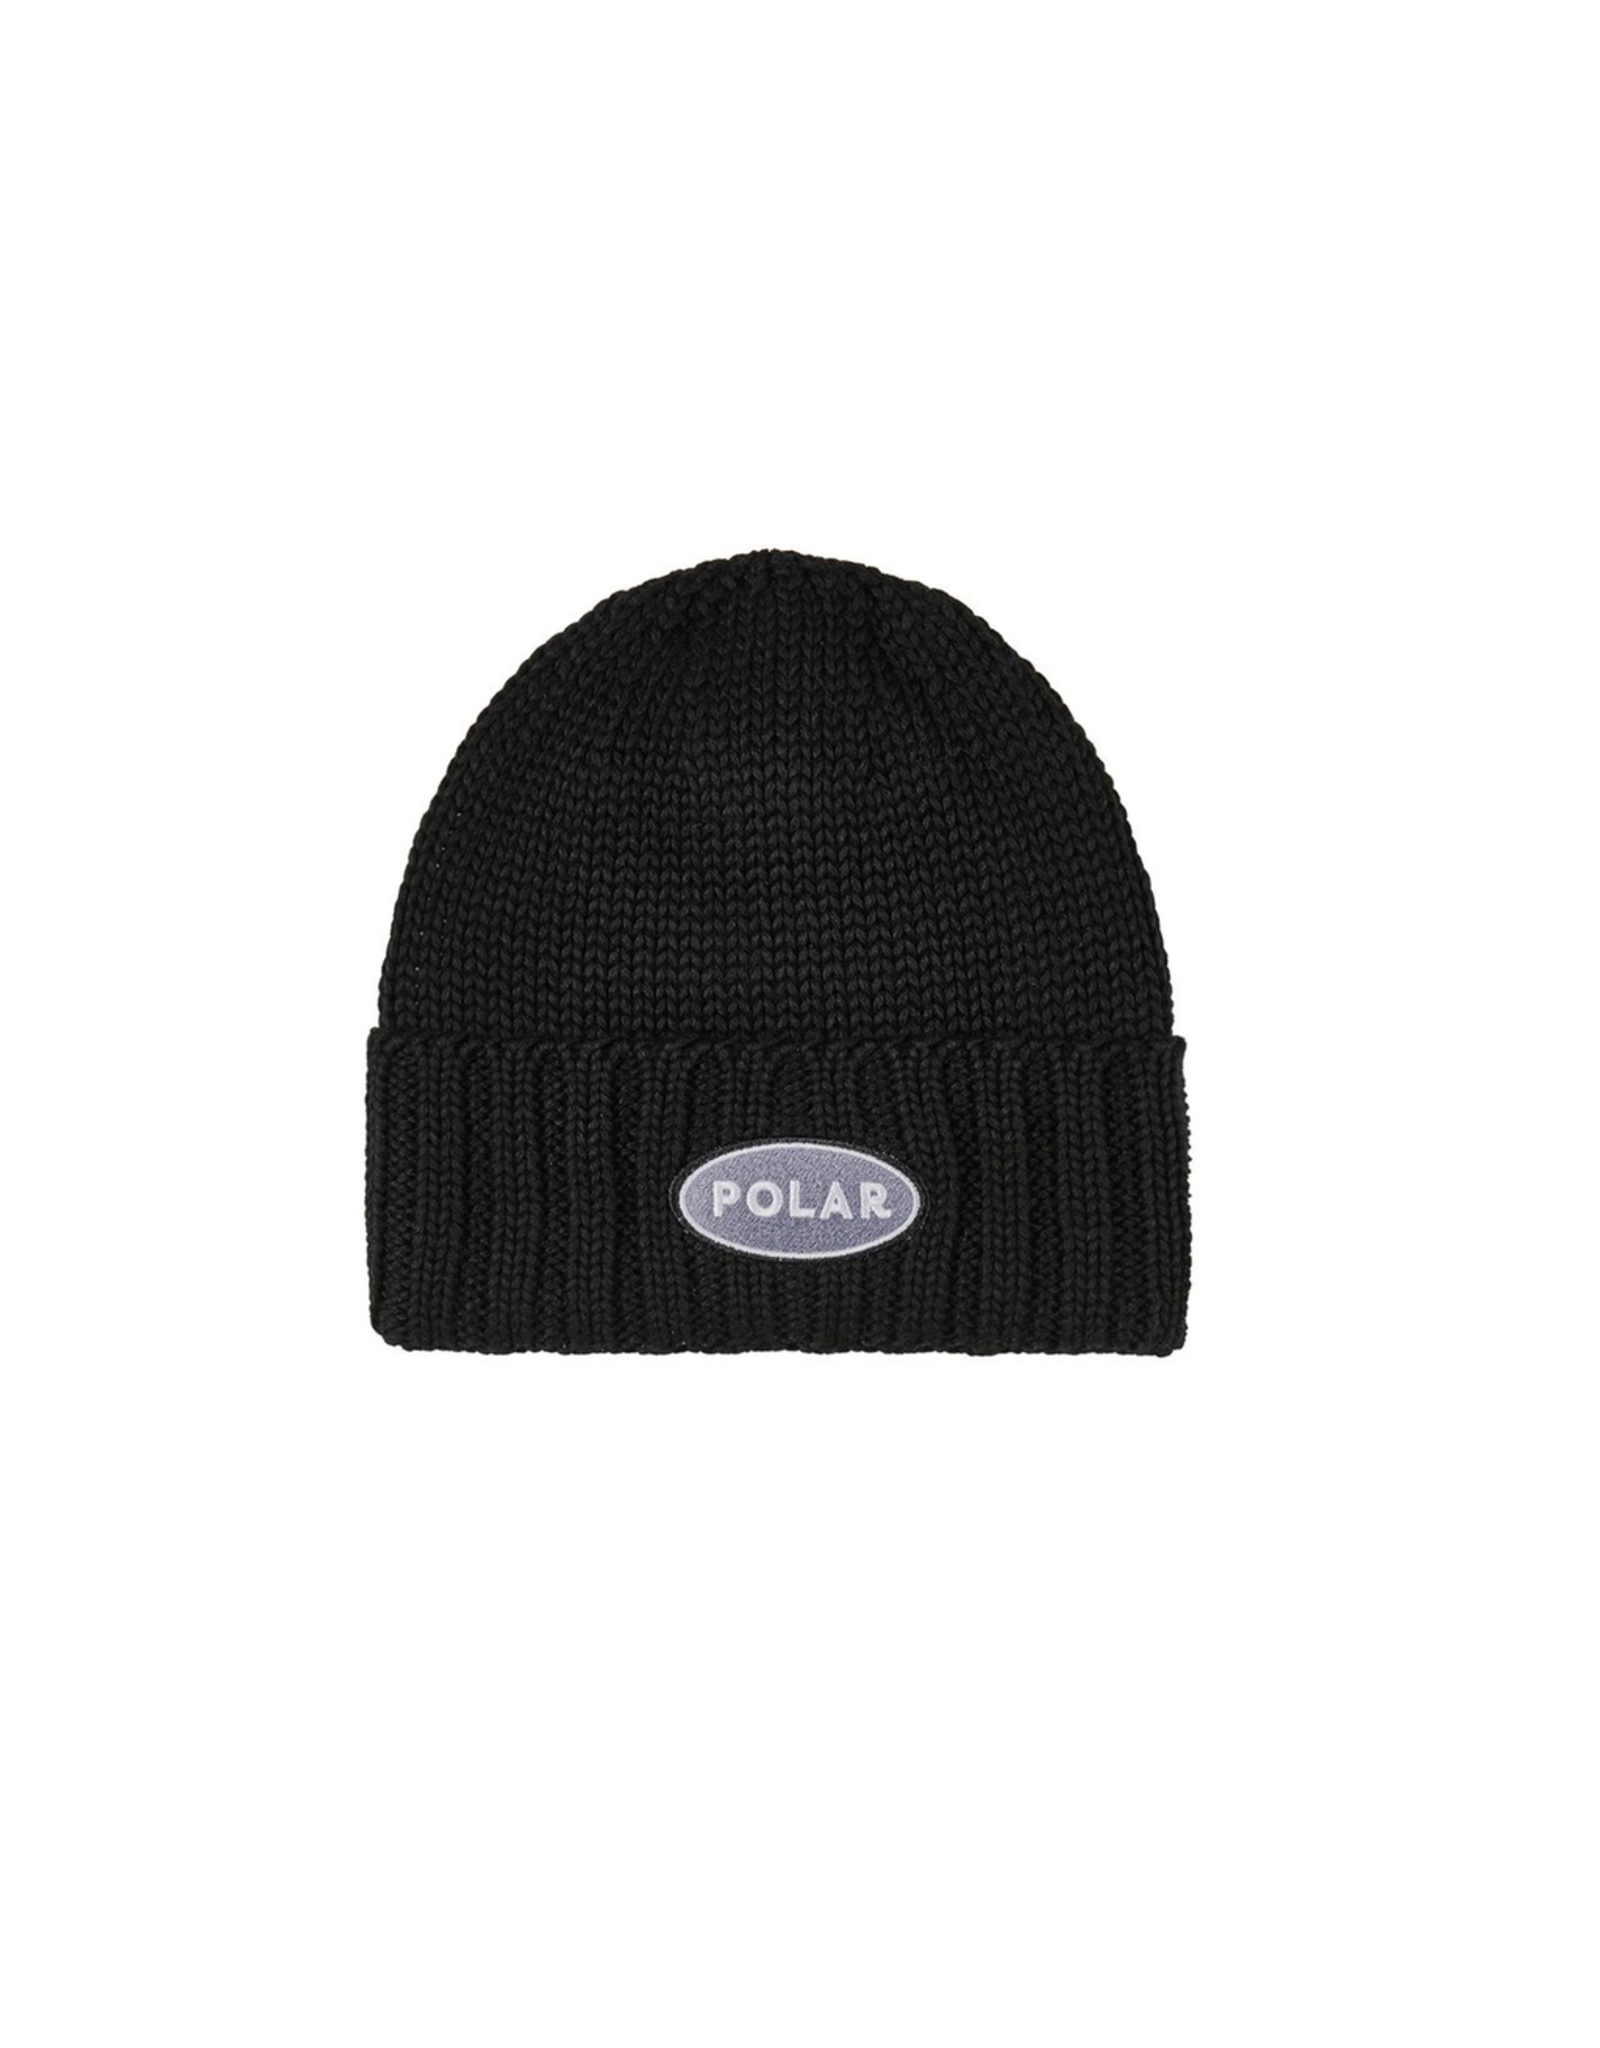 Polar Patch Beanie